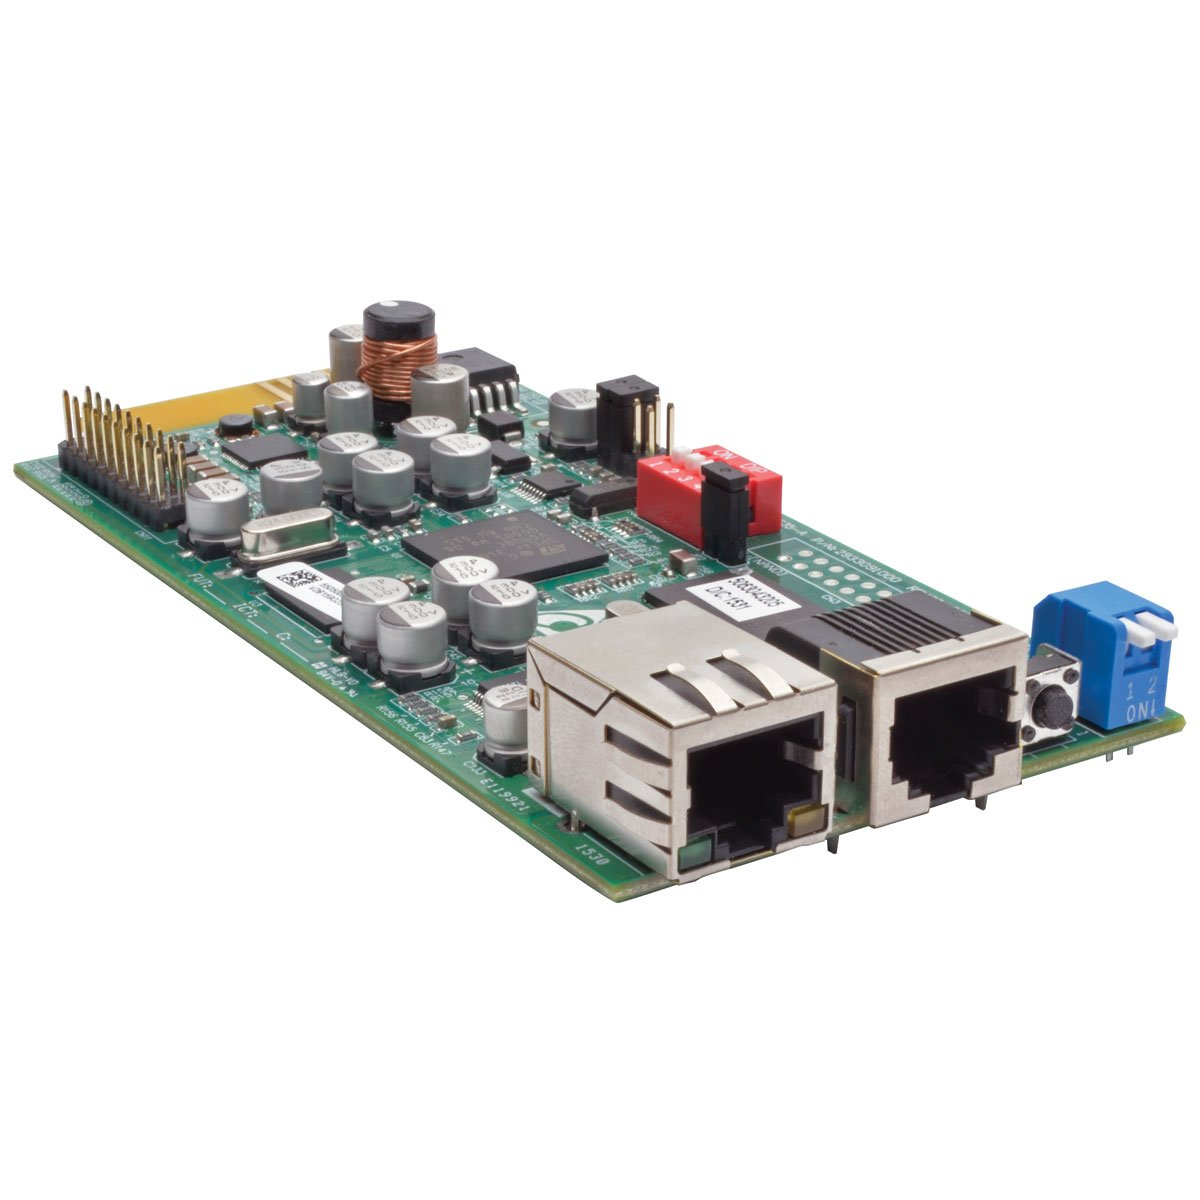 Tripp Lite SNMP/Java-Free Web Management Accessory Card for Compatible Tripp Lite UPS Systems (TLNETCARD) by Tripp Lite